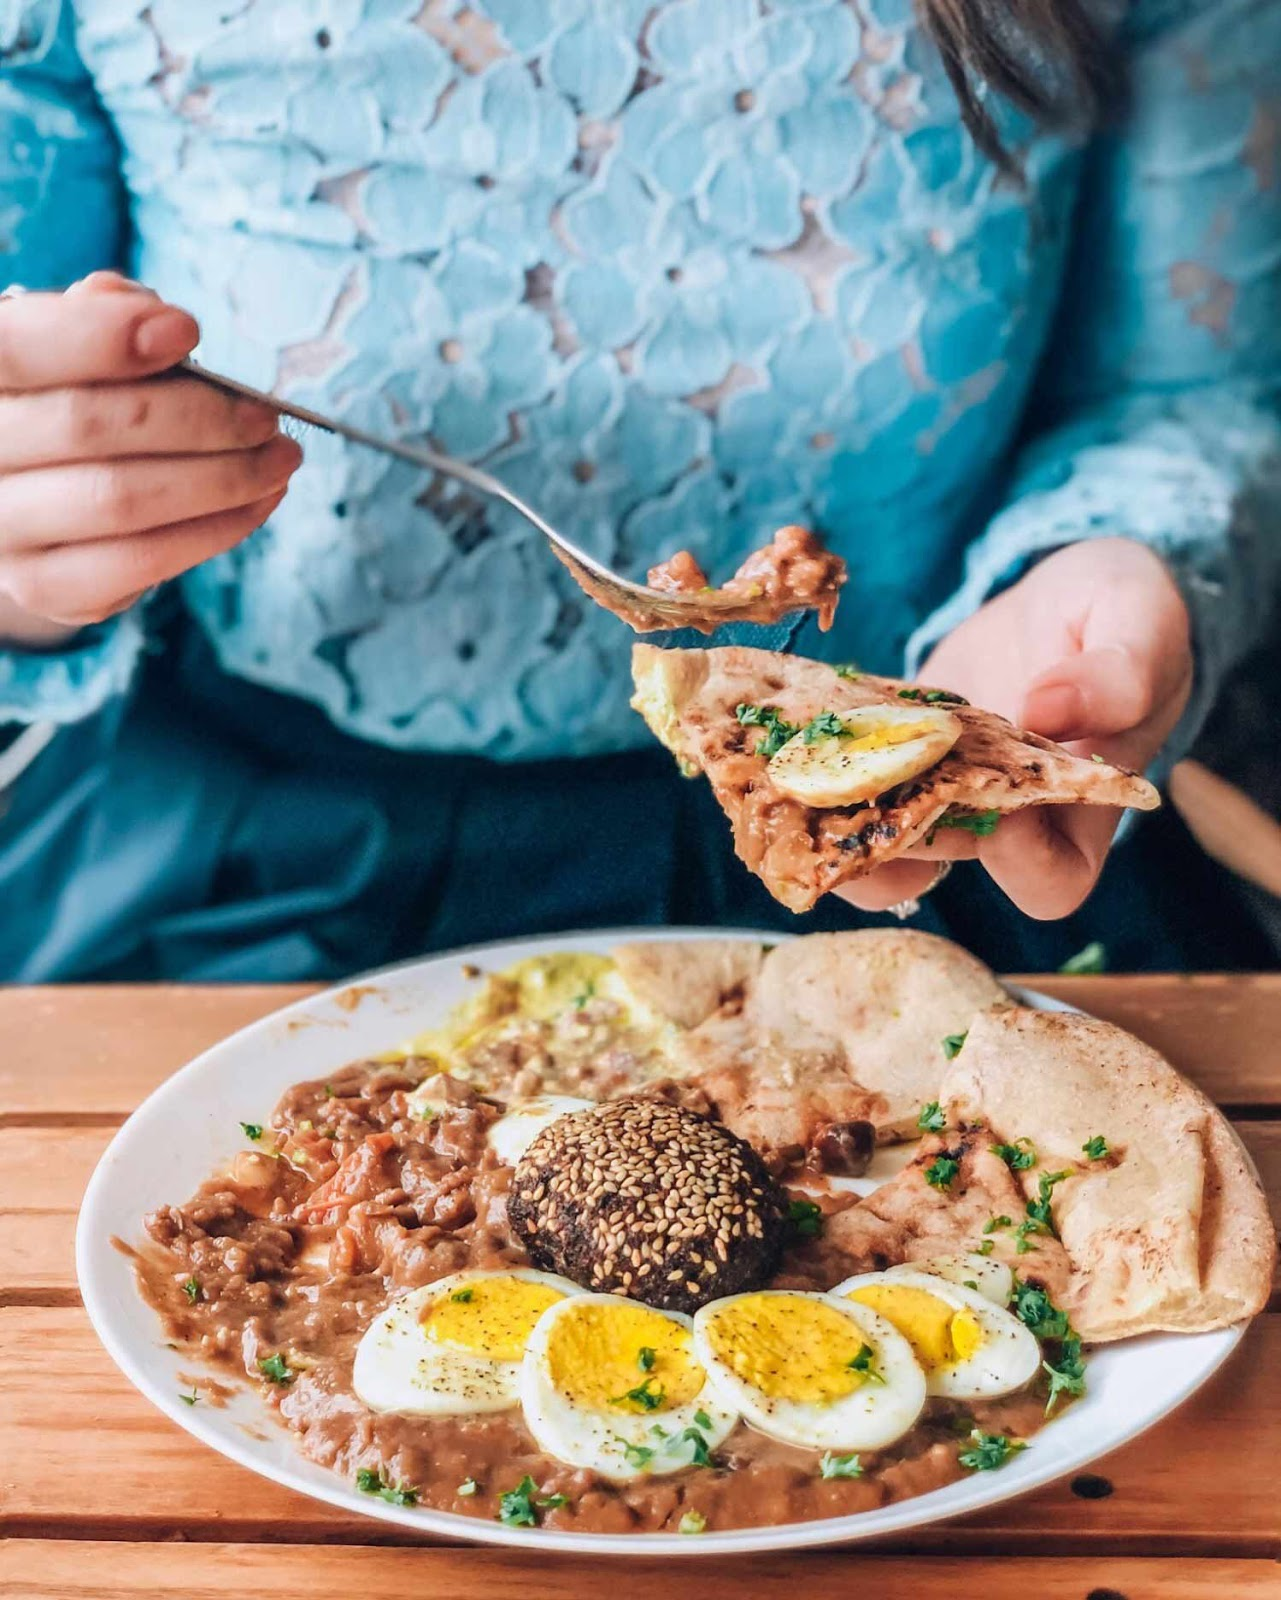 Best brunch ideas Toronto - Maha's Egyptian food